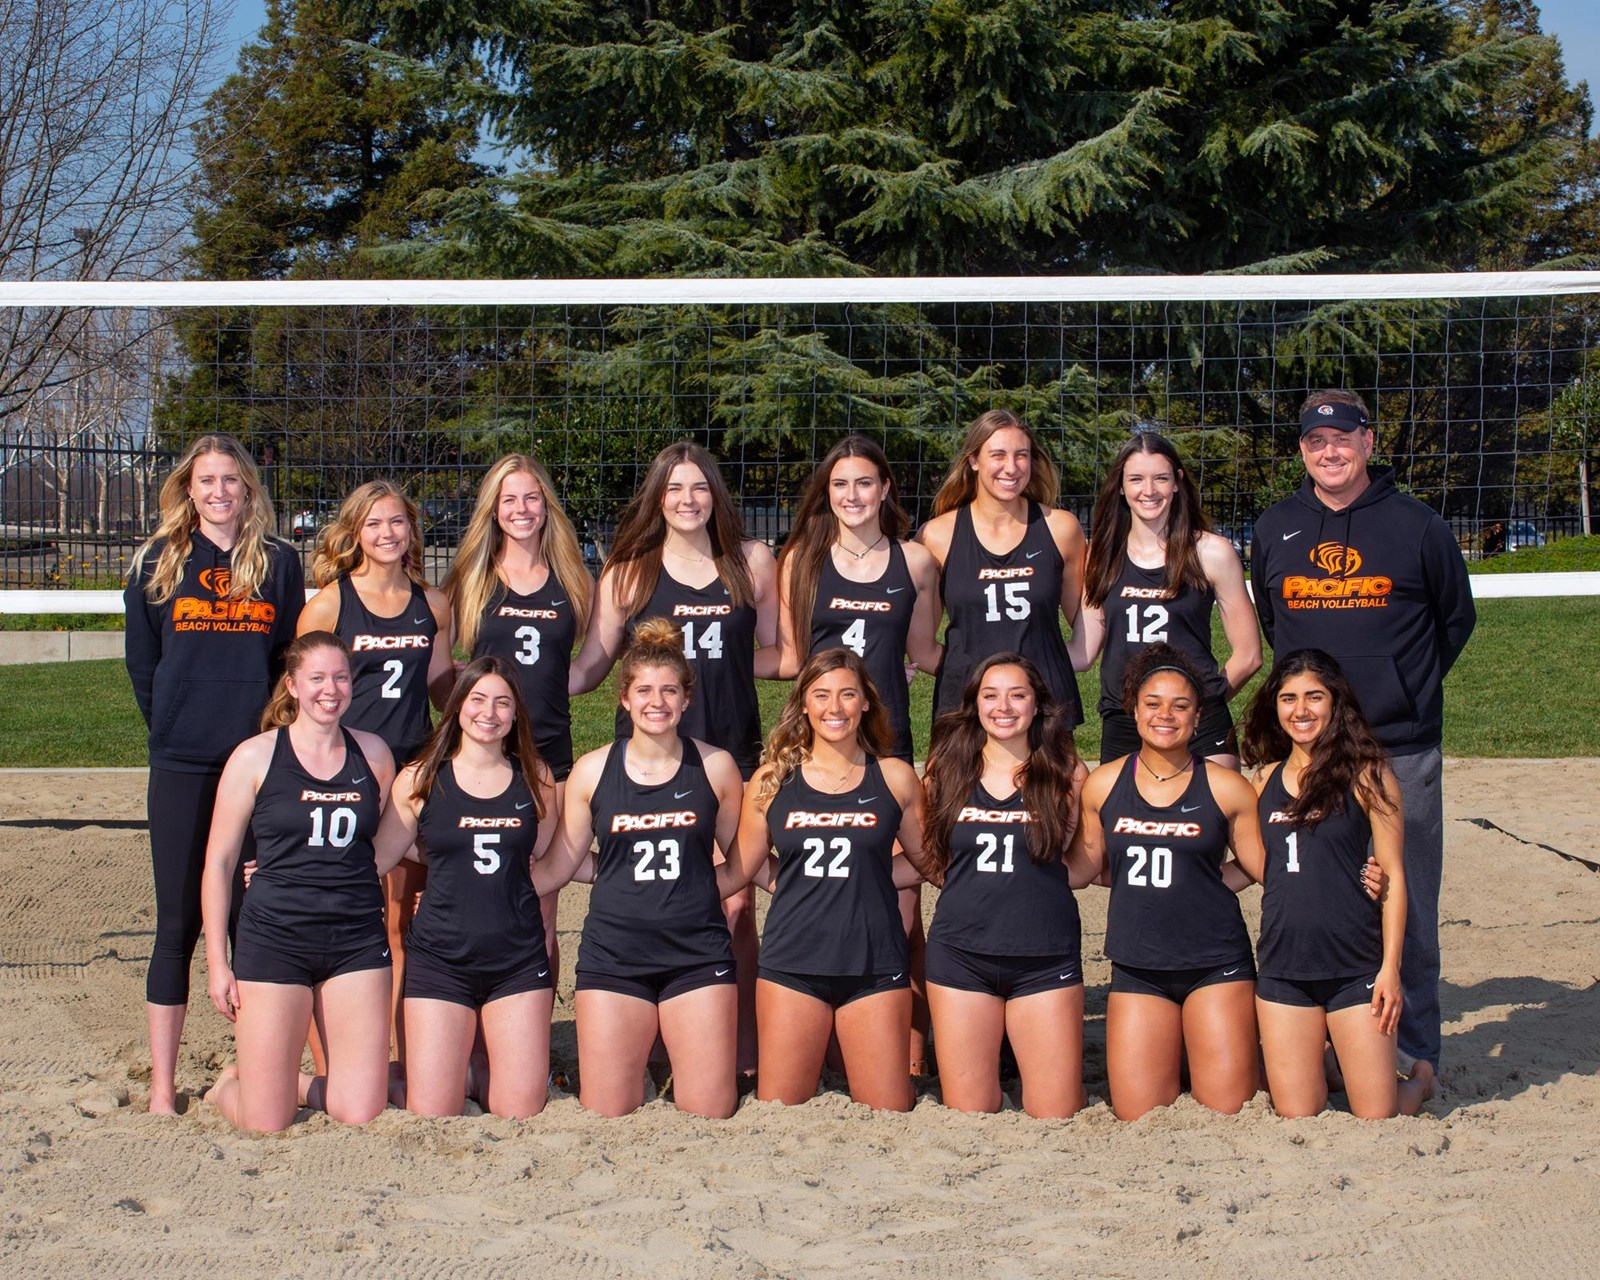 2020 Women S Beach Volleyball Roster University Of The Pacific